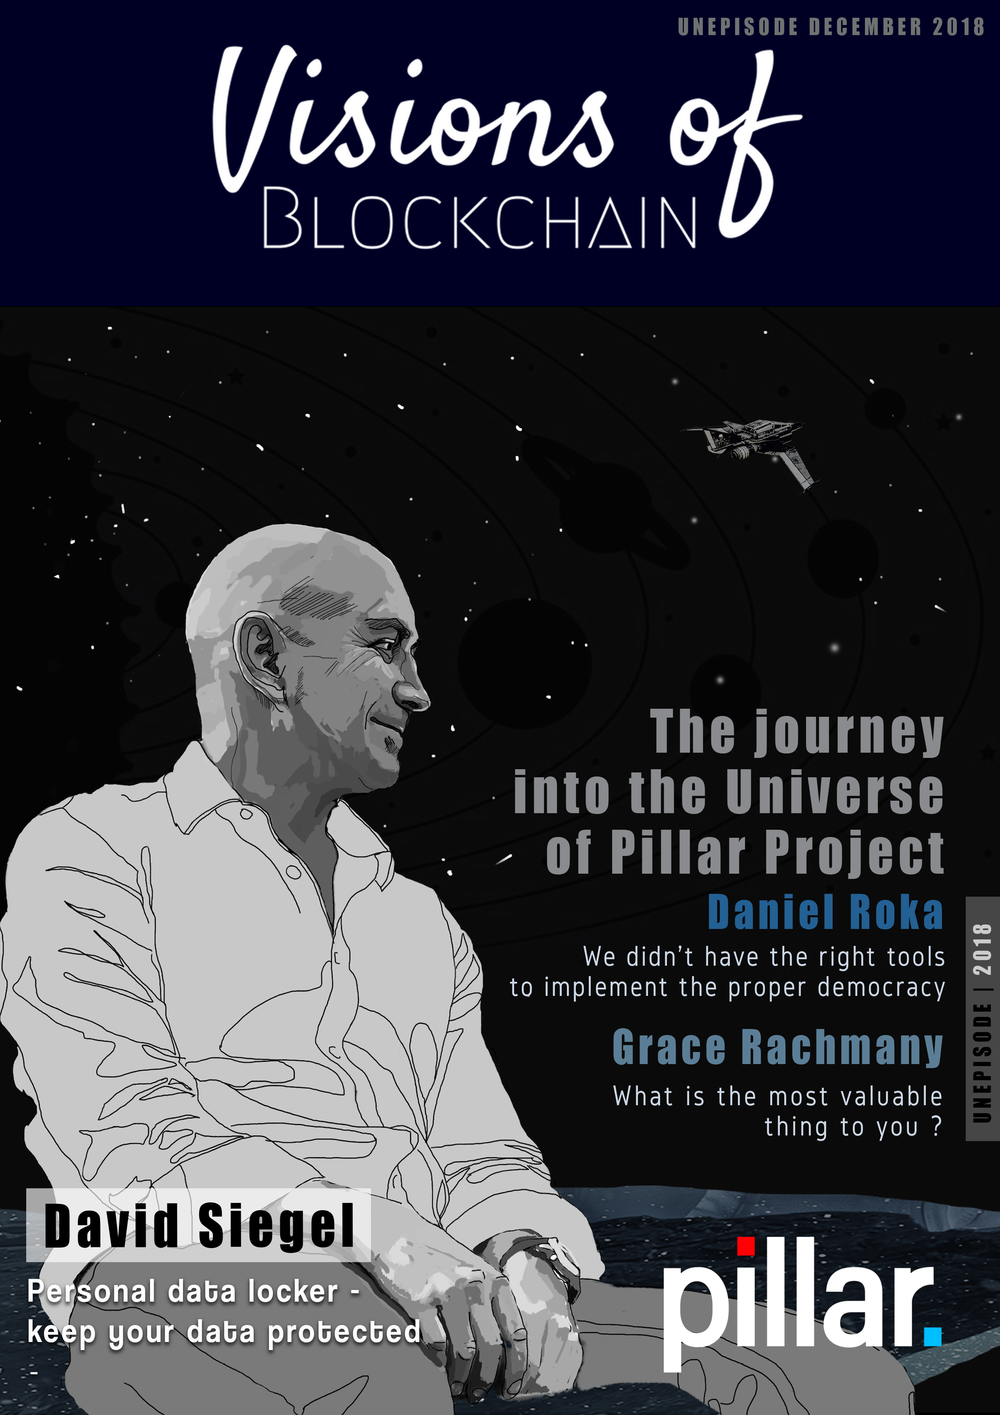 Visions of Blockchain Magazine - Pillar Unepisode Cover